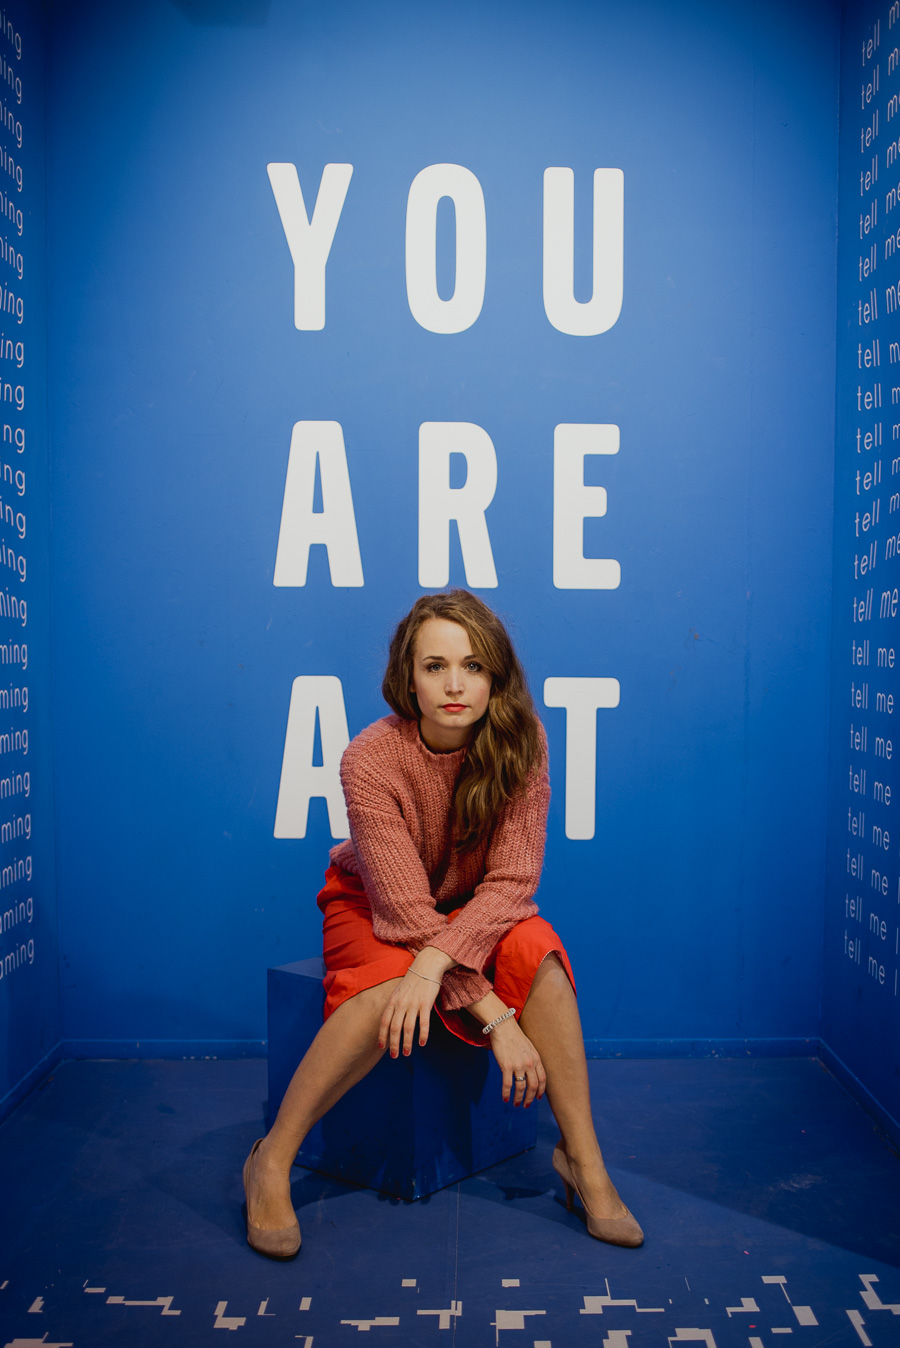 Your are art